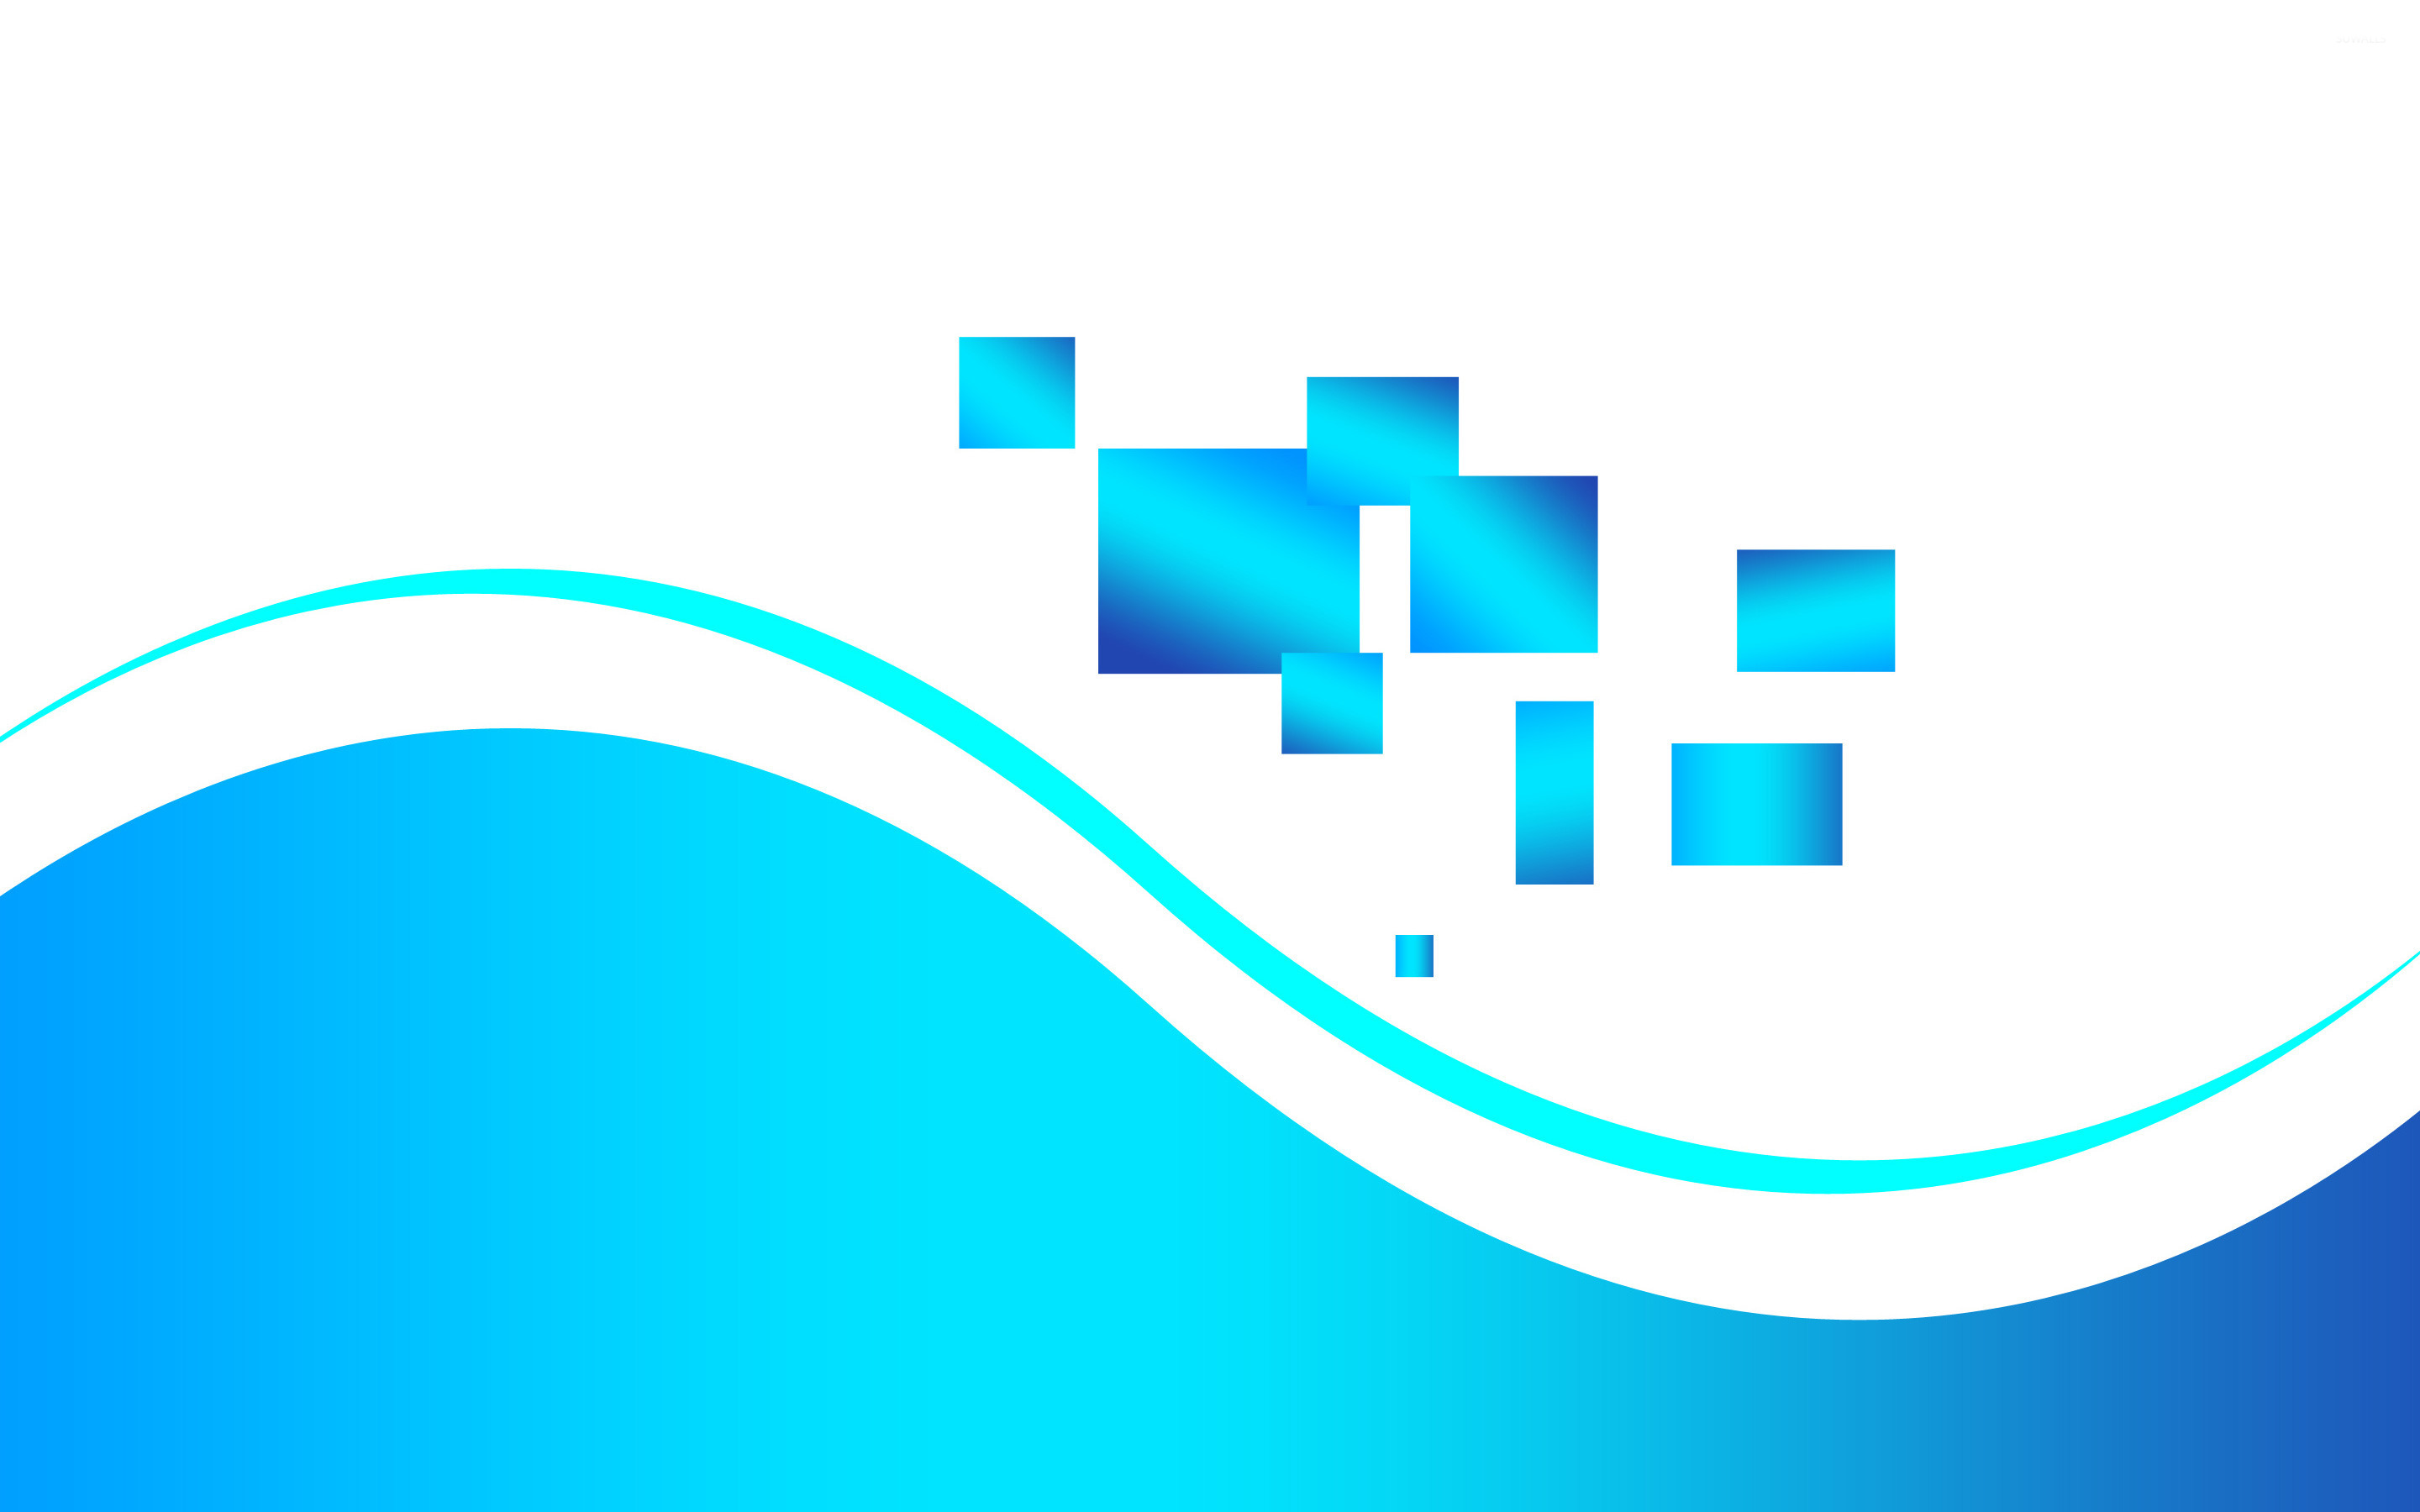 Teal Wallpaper With Quotes Blue Squares And Waves Wallpaper Vector Wallpapers 25209